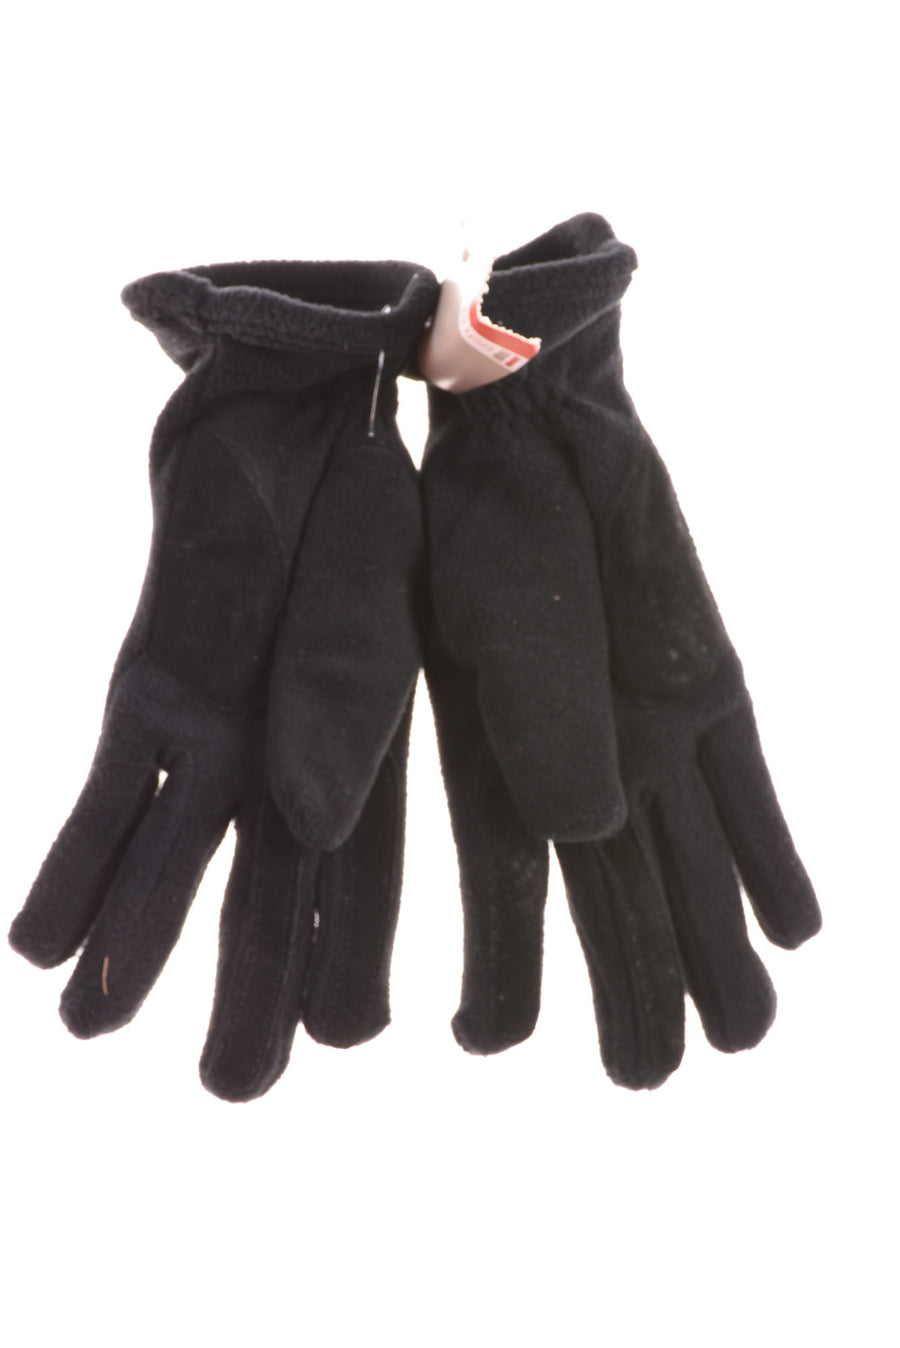 NEW Croft & Barrow Women's Gloves One Size Black